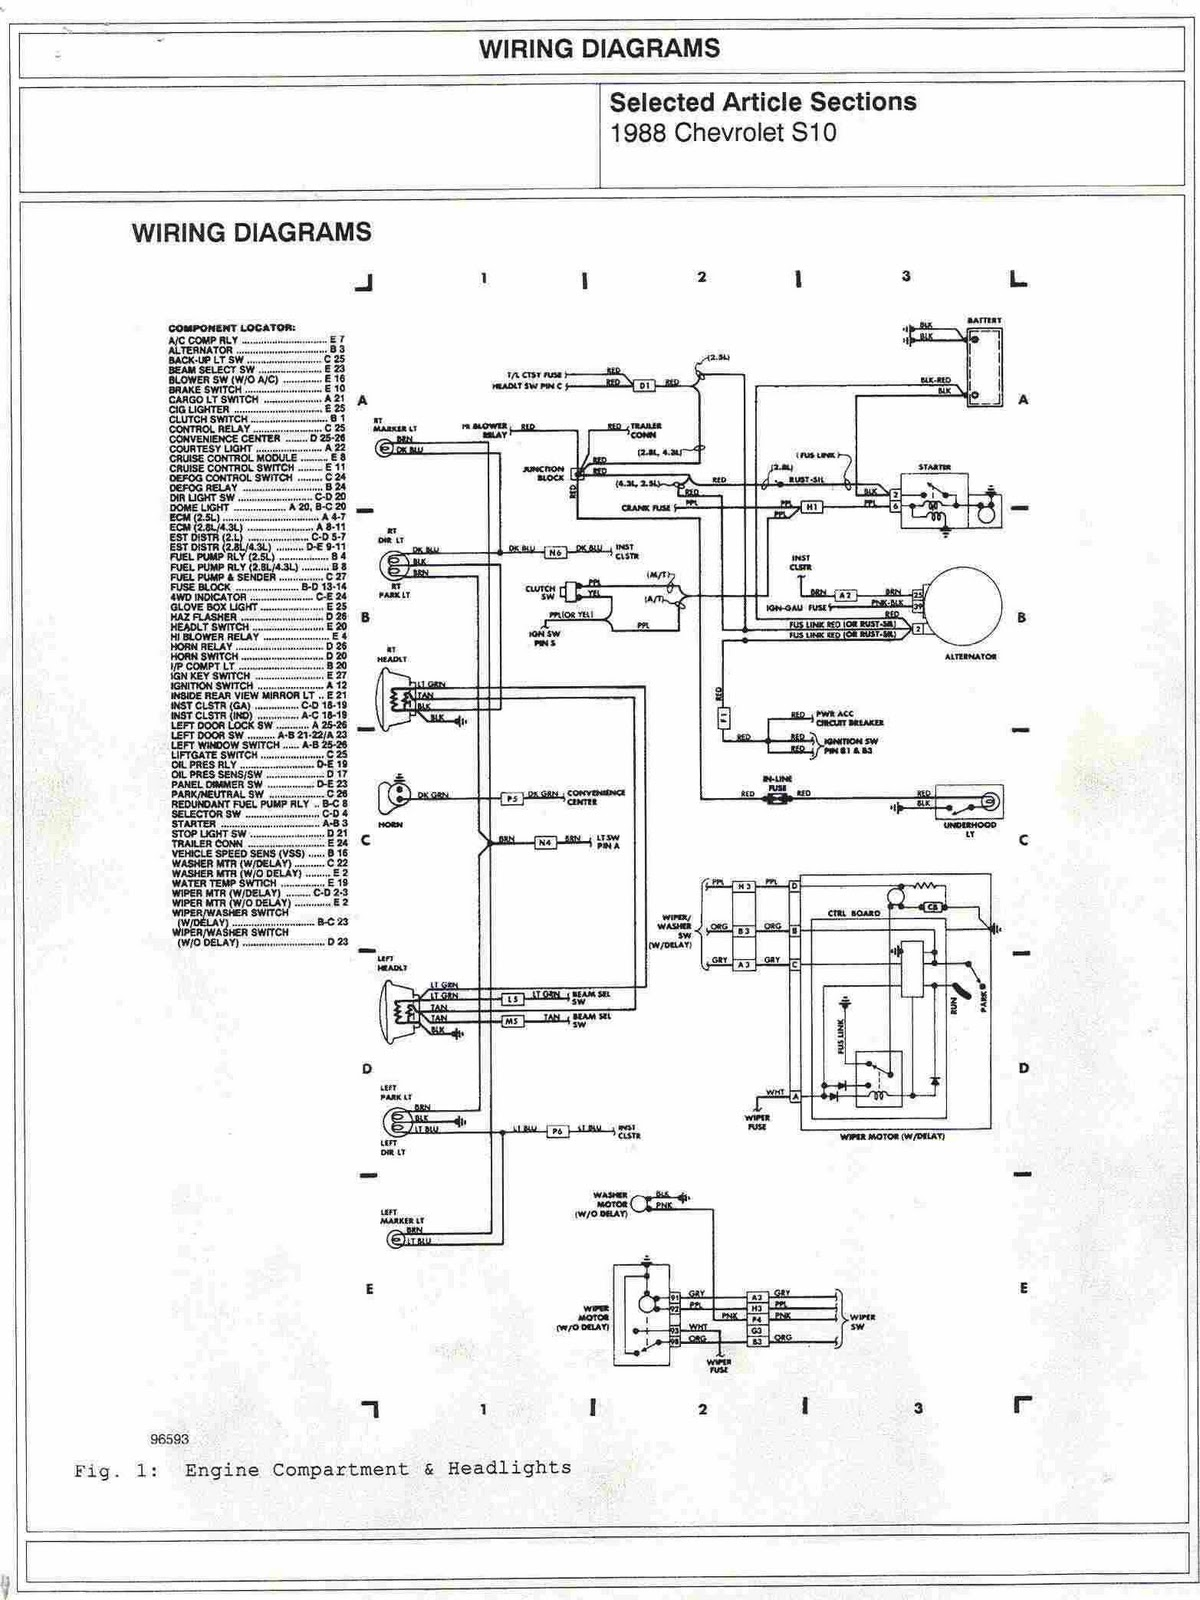 1988+Chevrolet+S10+Engine+Compartment+and+Headlights+Wiring+Diagrams 95 s10 wiring diagram 95 tahoe wiring diagram \u2022 wiring diagrams 99 F250 Fuse Box Diagram at eliteediting.co